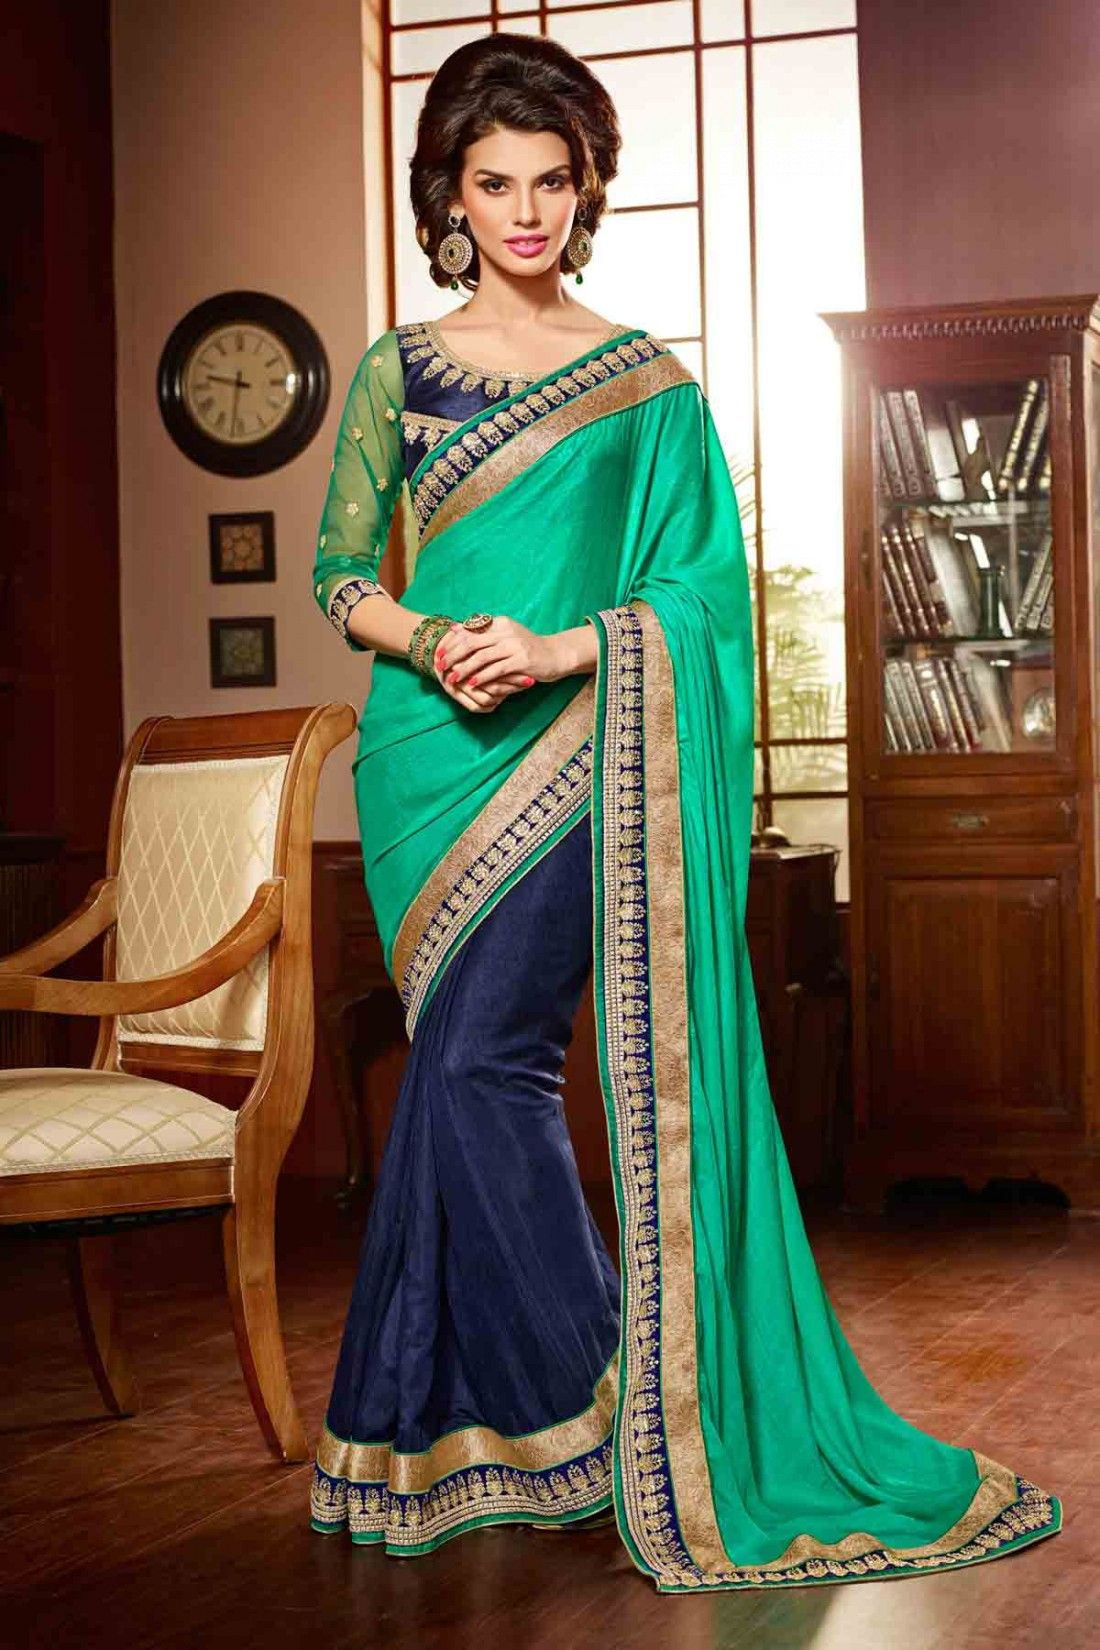 38142d4eaac53 Beautiful emerald green and navy blue saree with gold trim. | Green ...